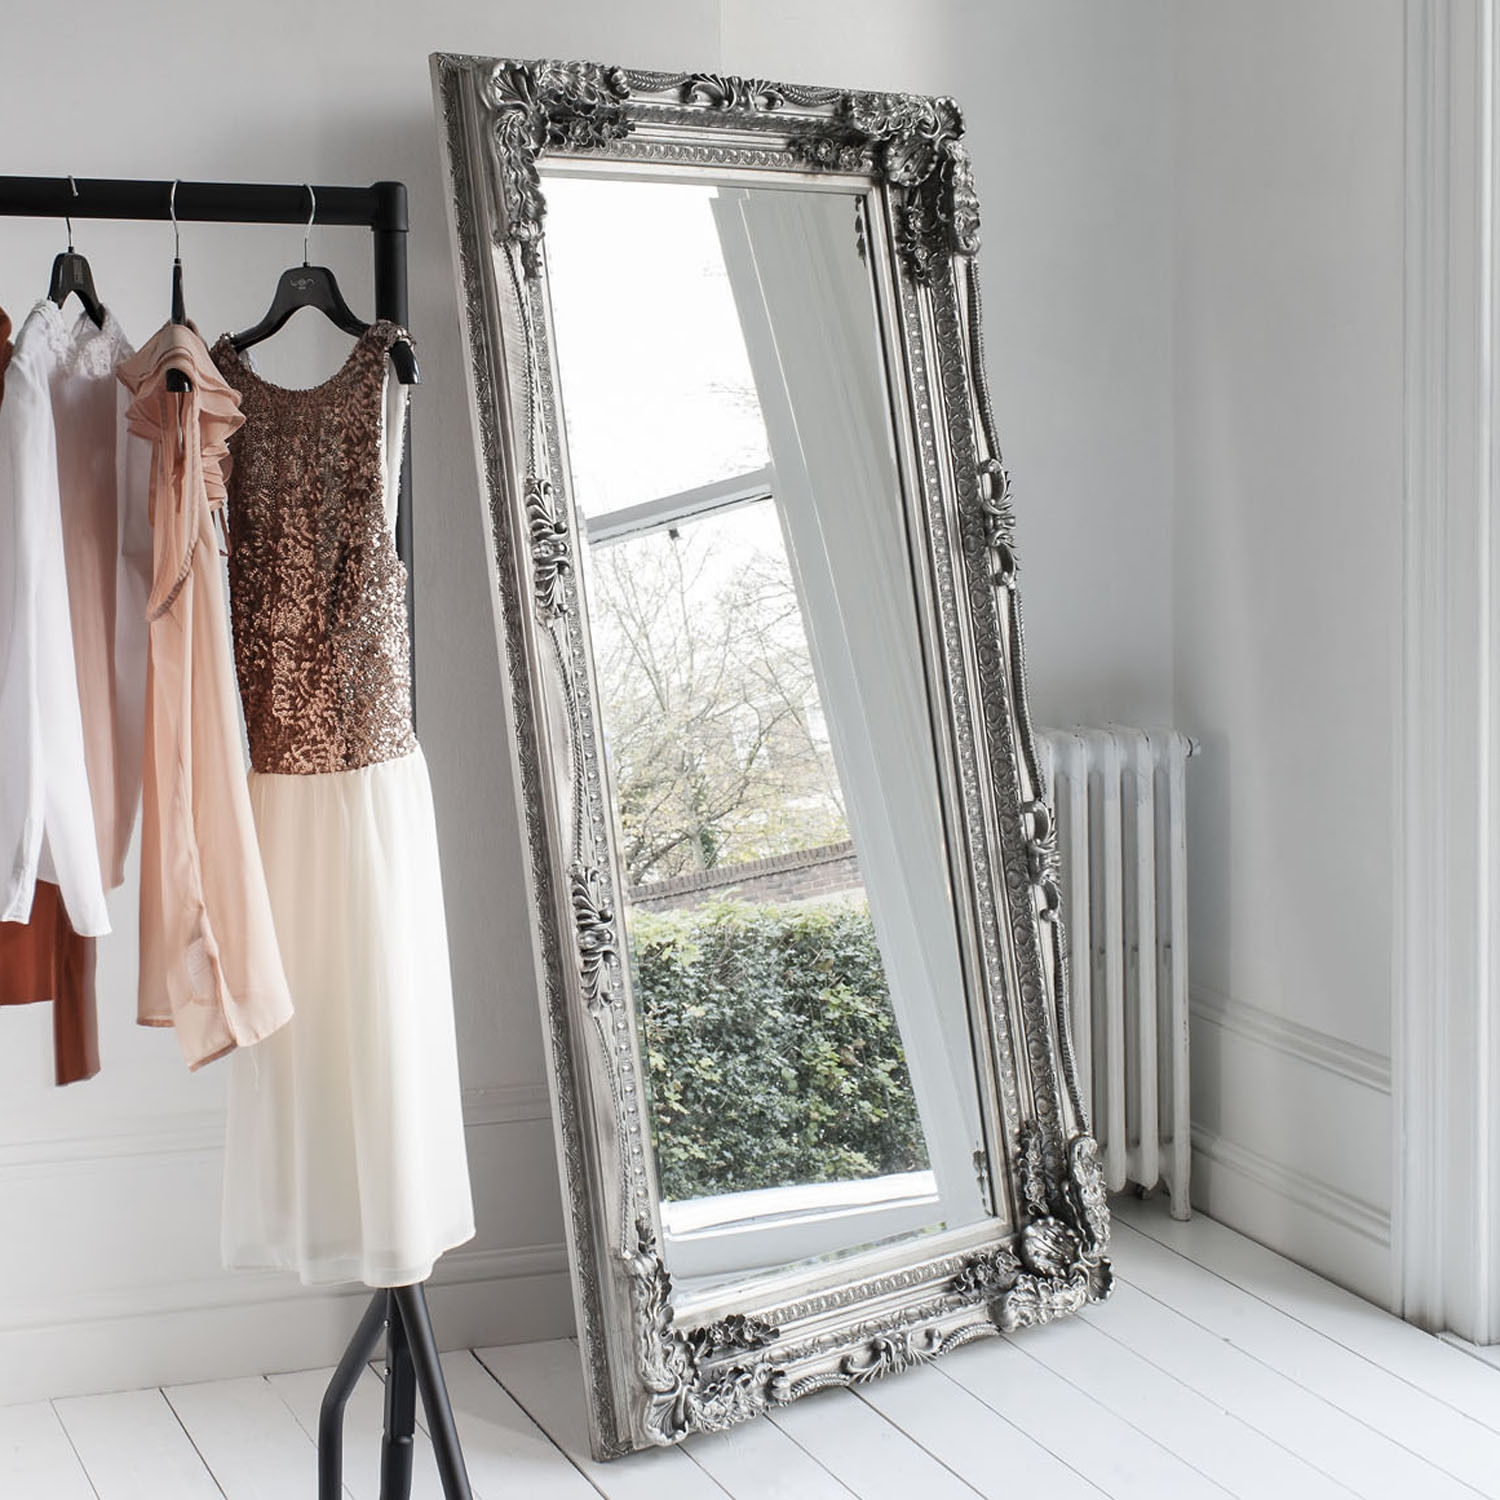 I Want A Large Floor Mirror In The Formal Living Roomstudio Within French Floor Mirrors (View 12 of 15)